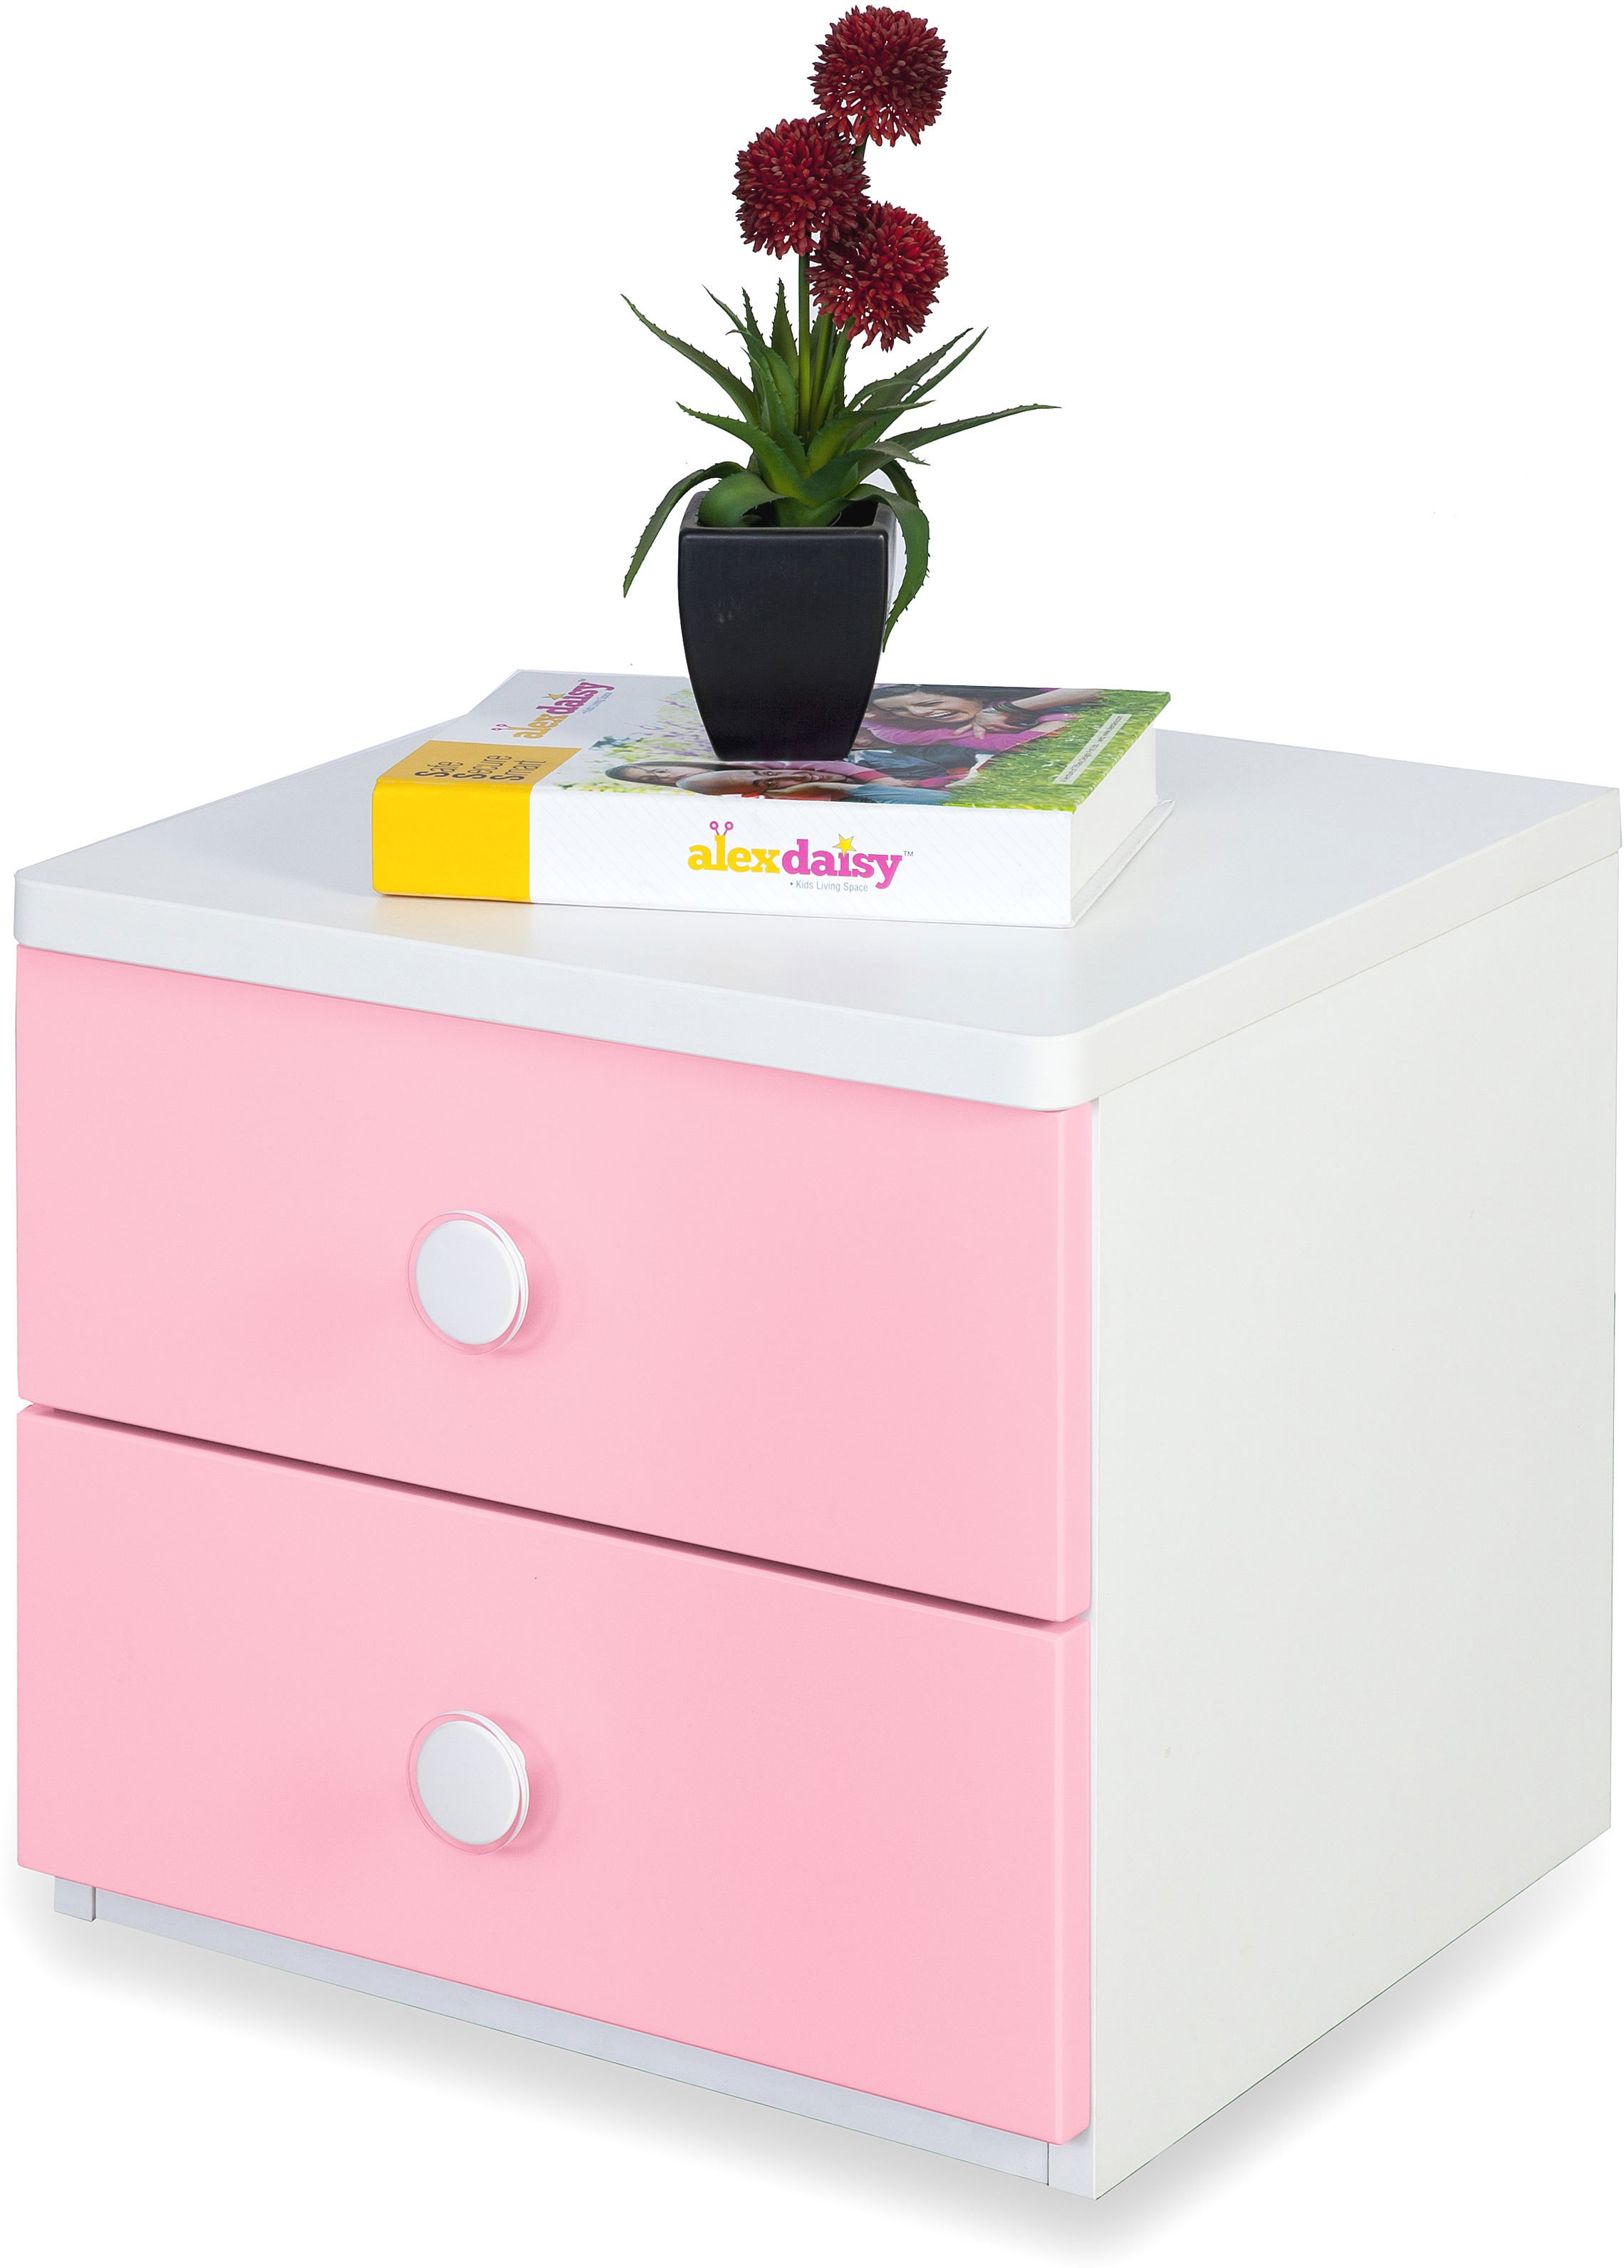 View Alex Daisy Victoria Engineered Wood Bedside Table(Finish Color - Pink & White) Price Online(Alex Daisy)